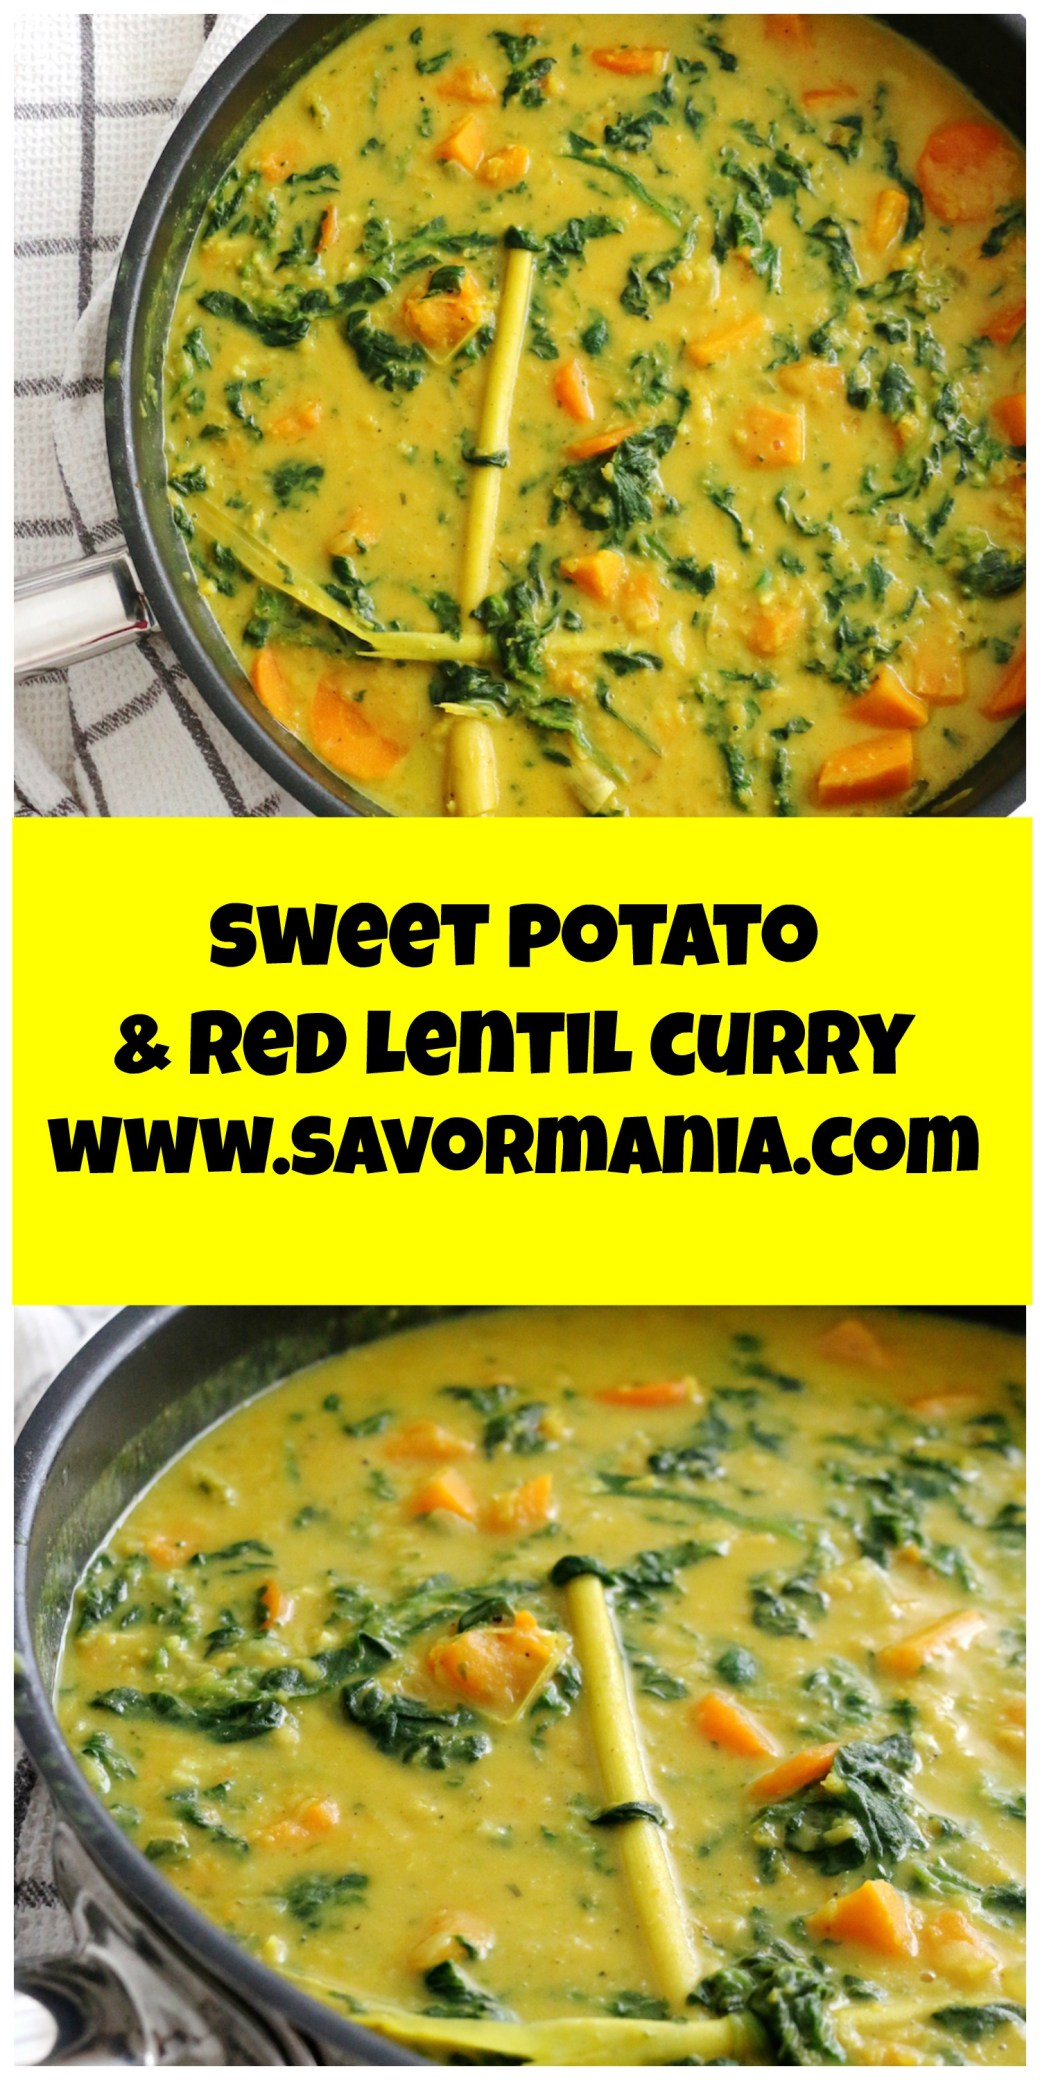 sweet potato and red lentil coconut curry | www.savormania.com